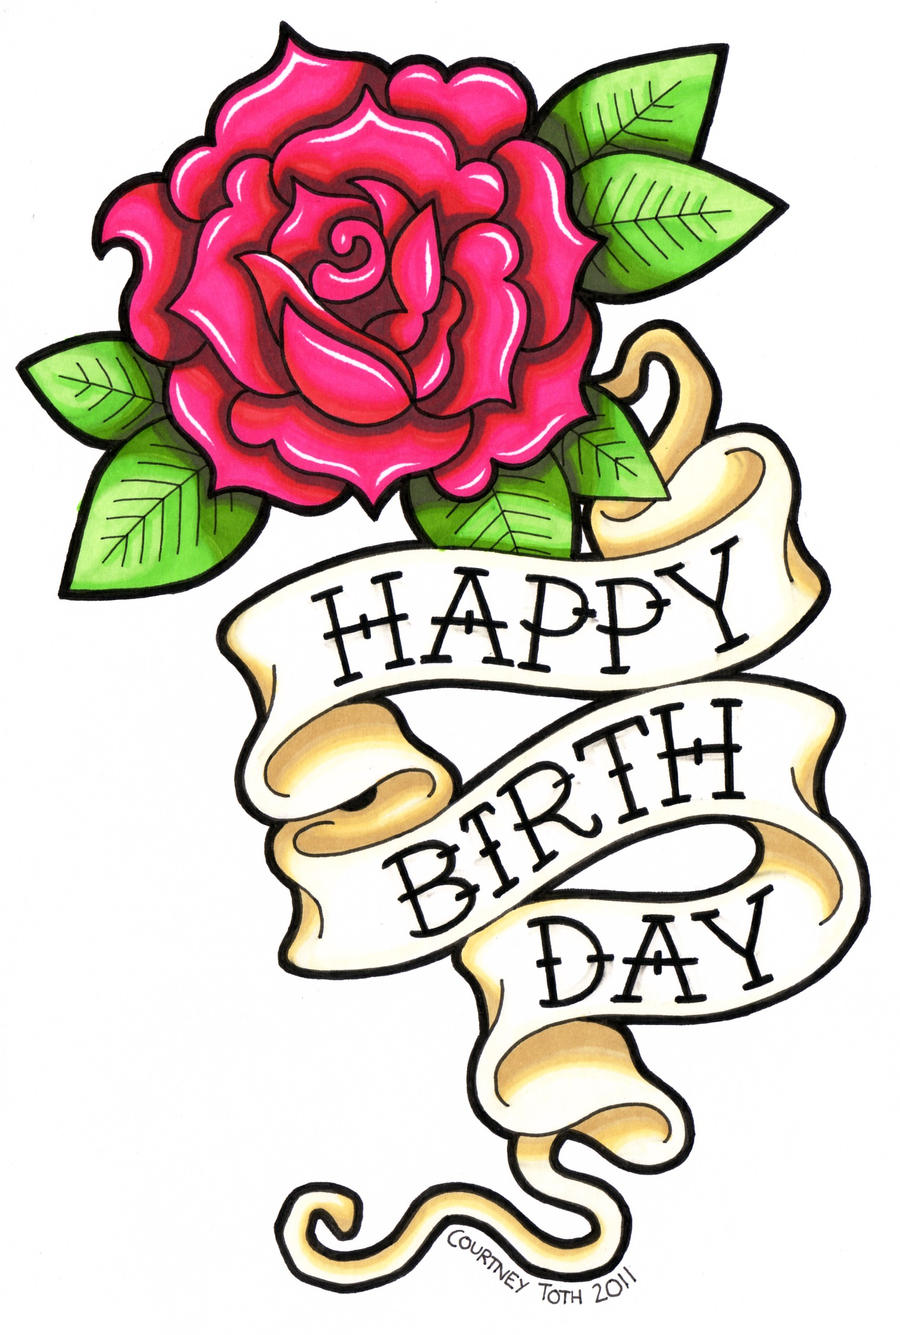 Pink rose birthday card by metal petey flower on deviantart pink rose birthday card by metal petey flower izmirmasajfo Image collections